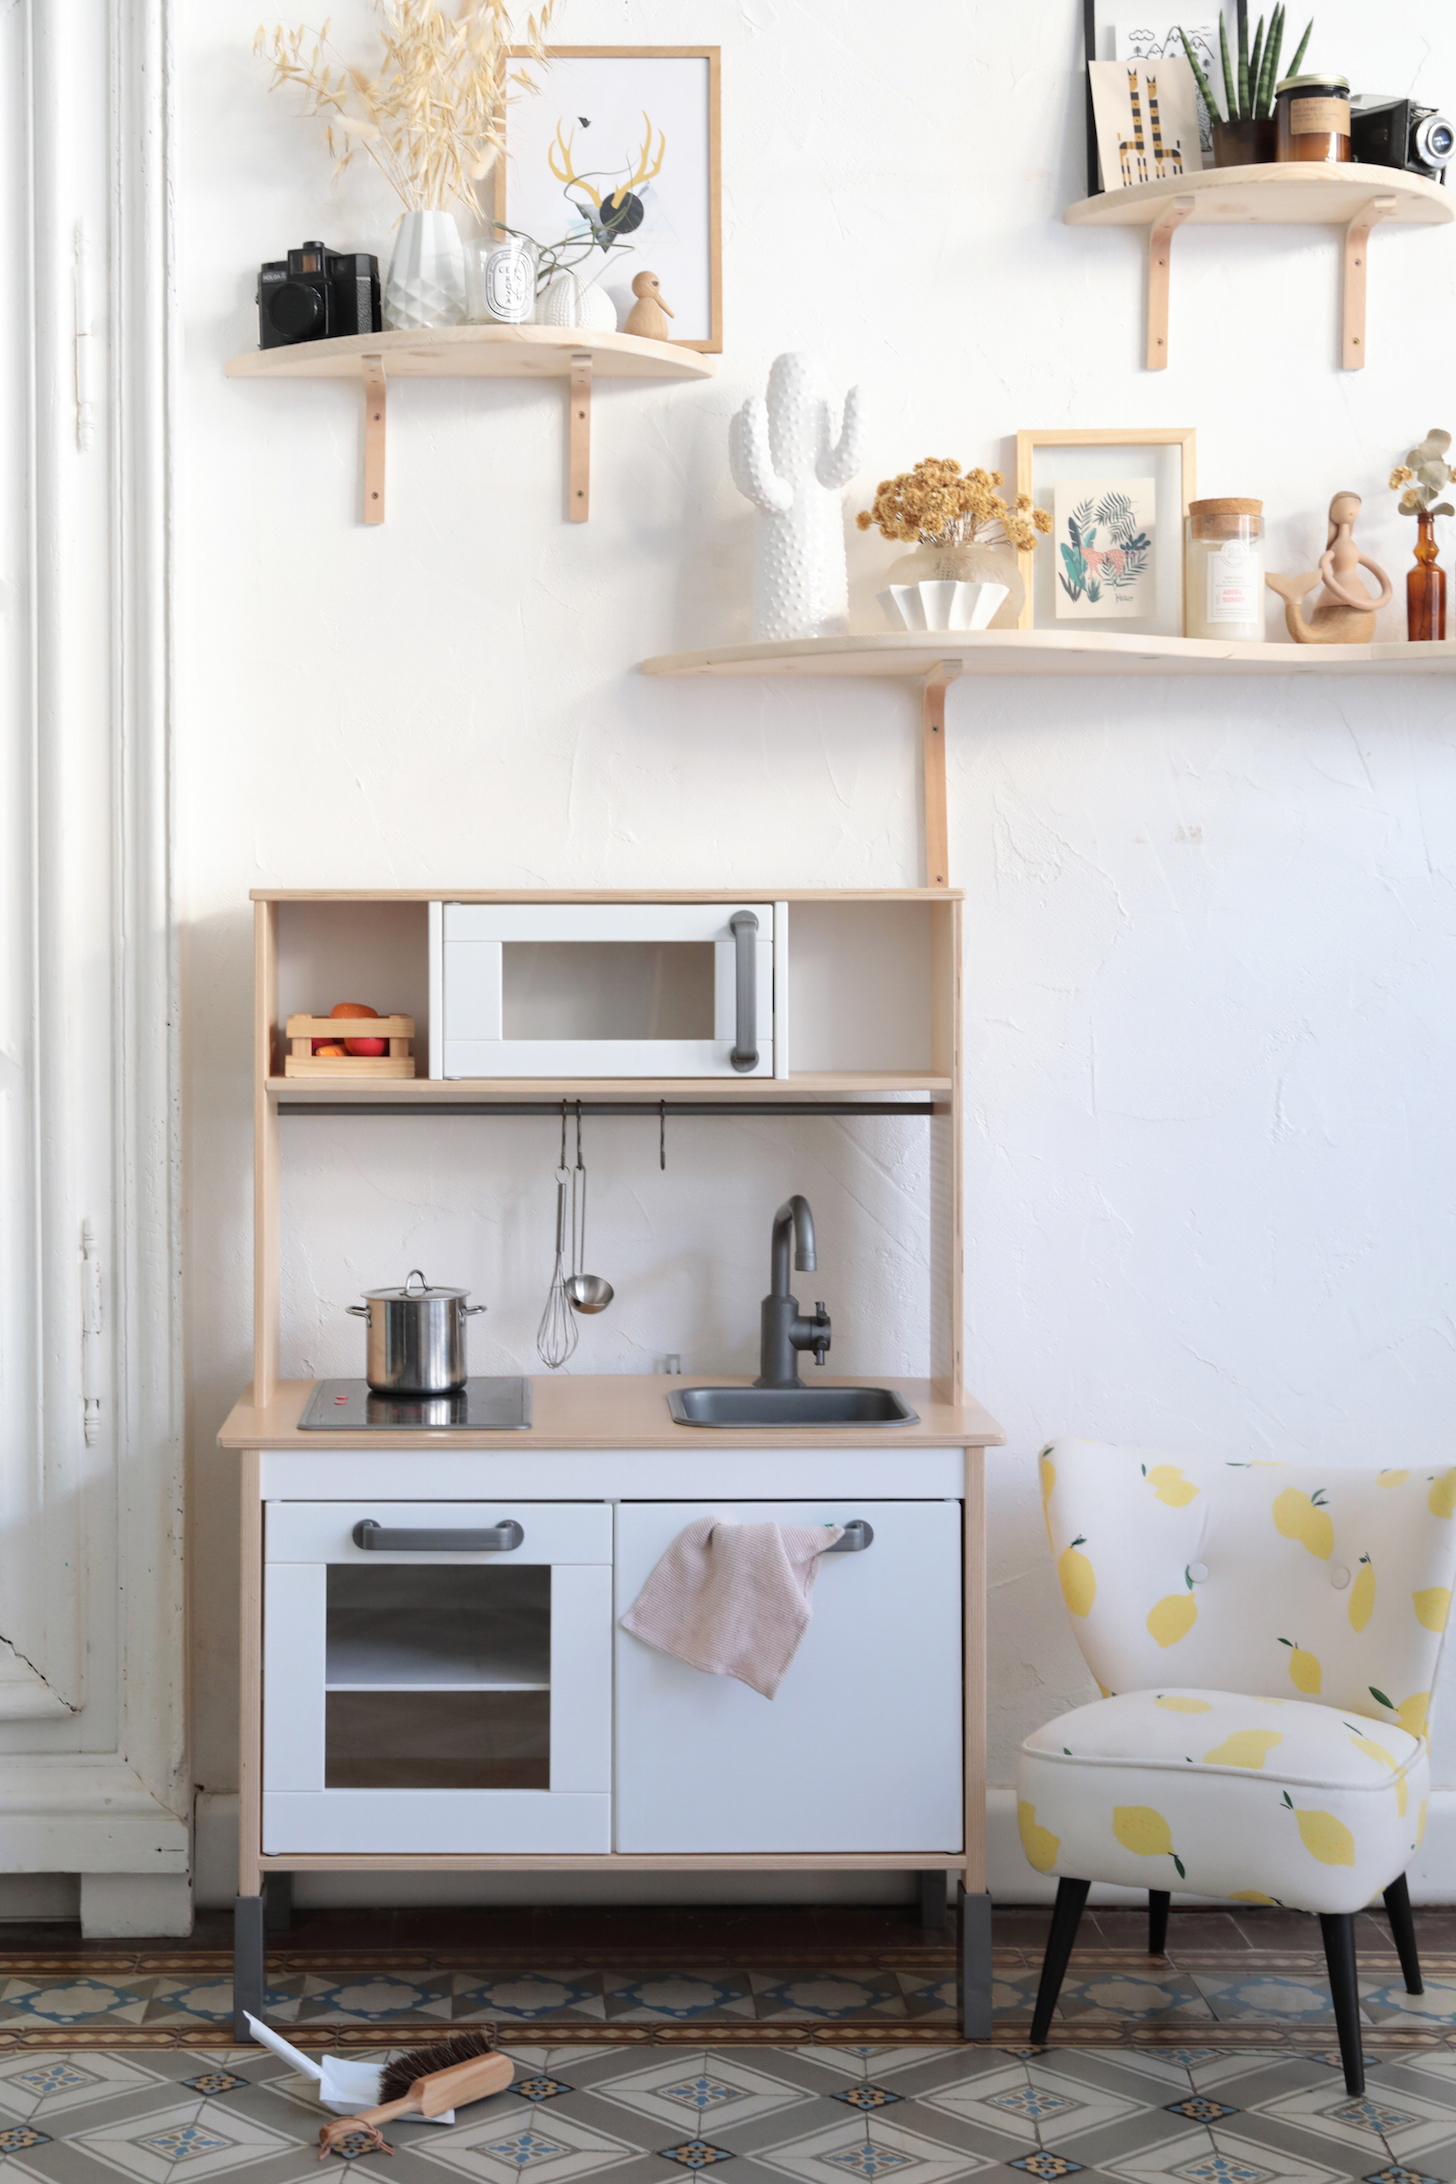 ikea hack comment relooker la cuisine pour enfant duktig. Black Bedroom Furniture Sets. Home Design Ideas